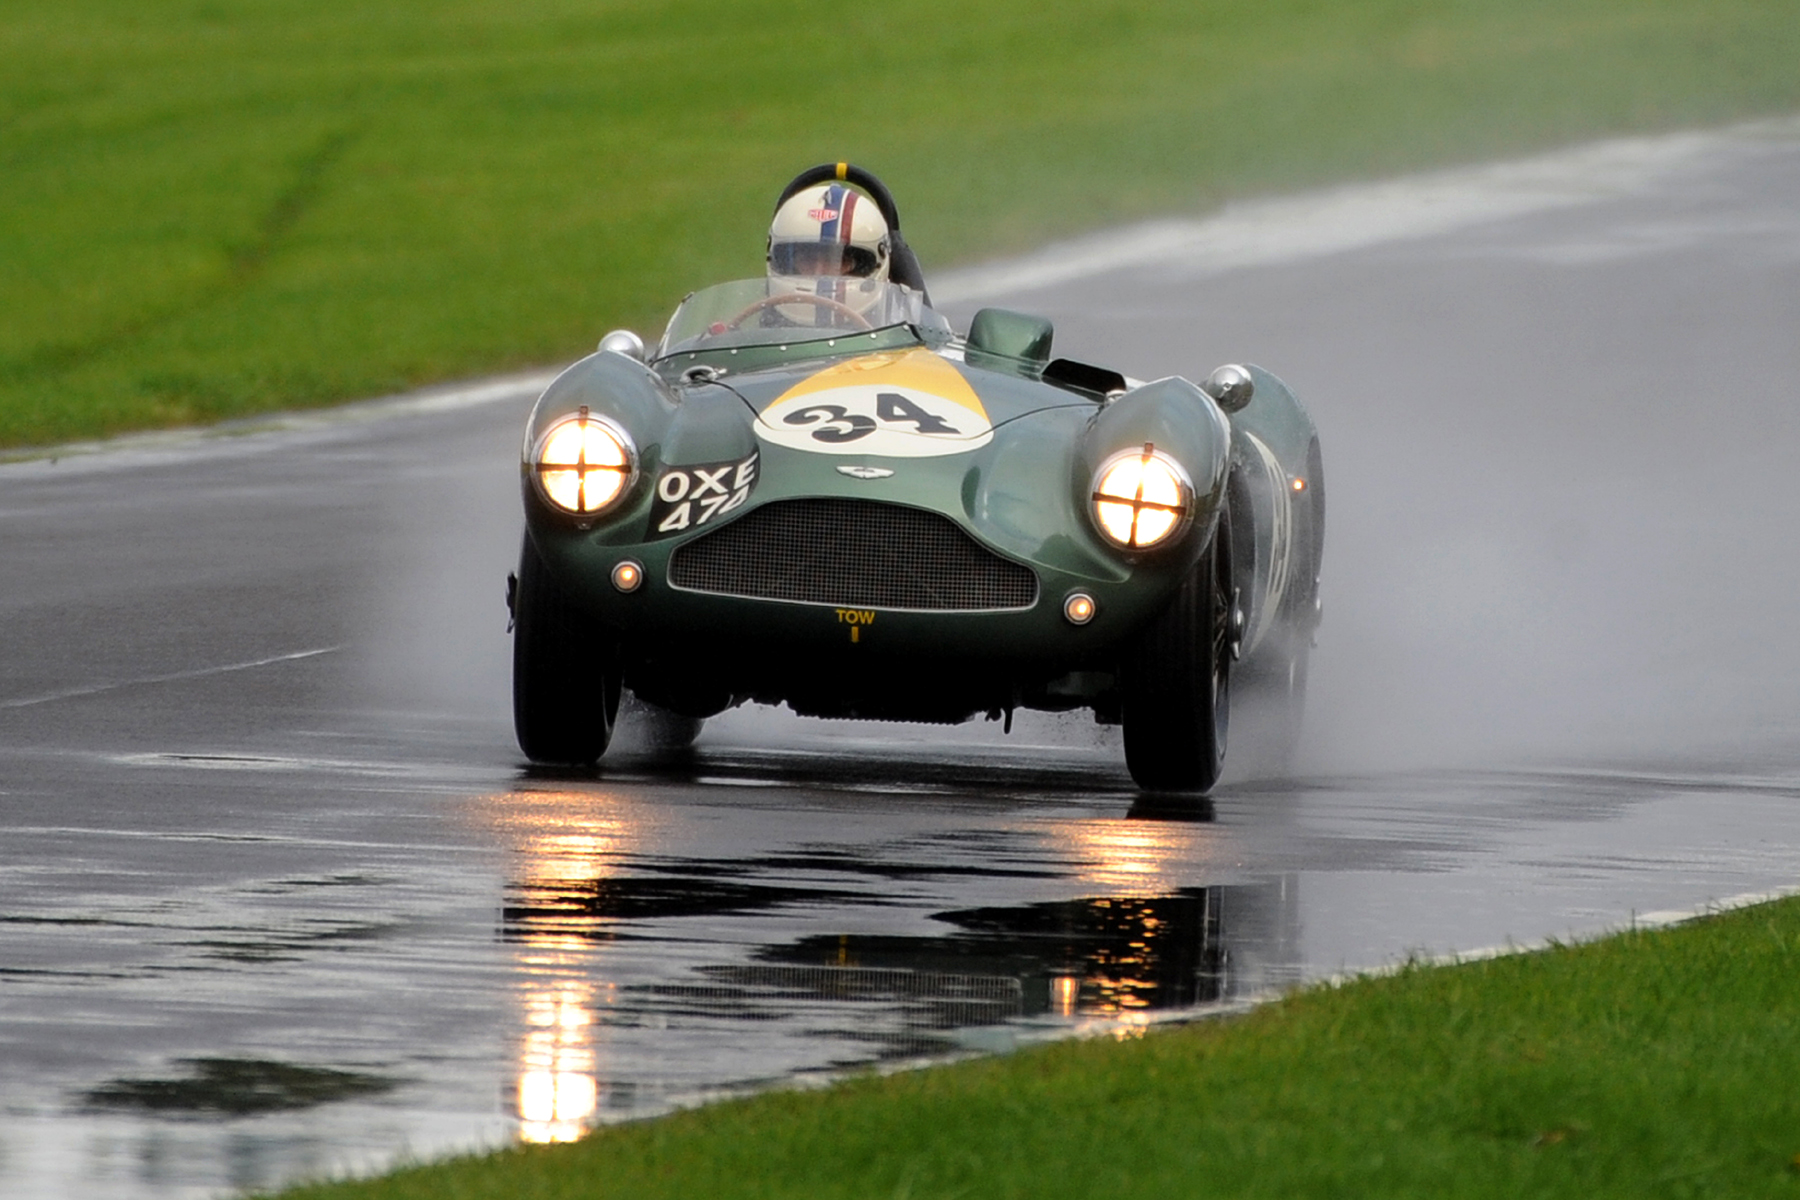 Steve Boultbee-Brooks completes the first lap in splendid isolation in the beautiful DB3S  Photo - Jeff Bloxham.